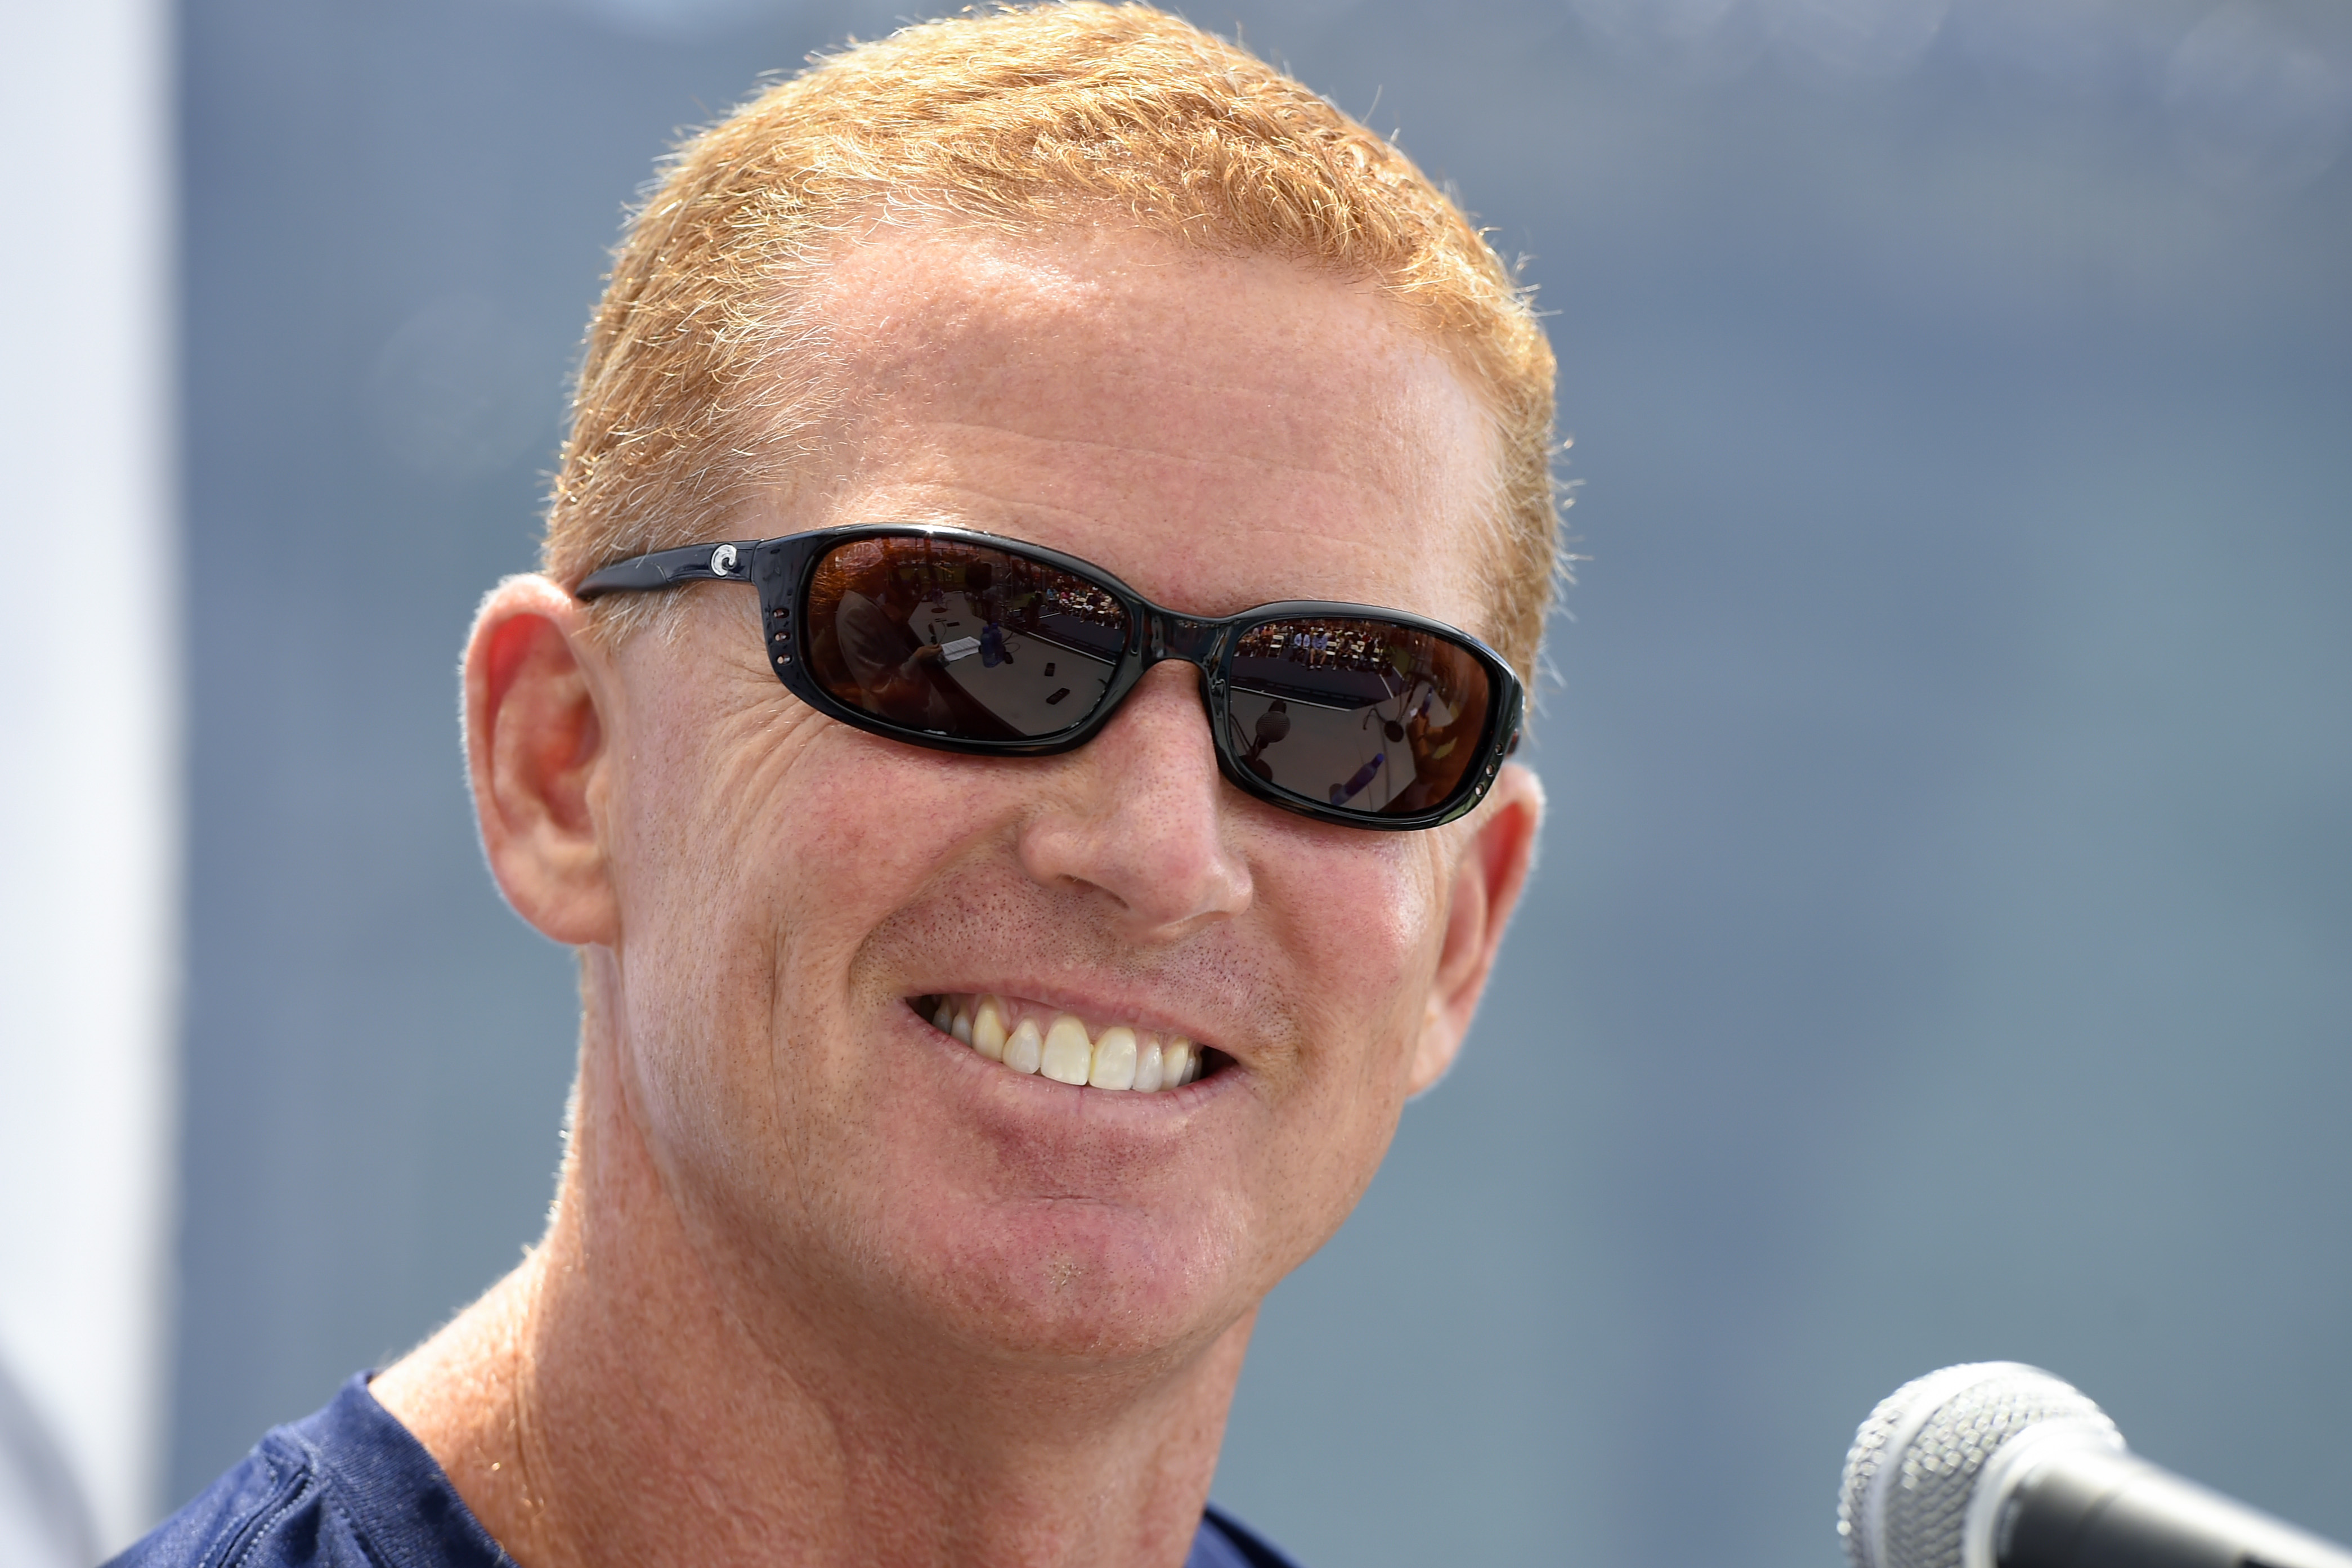 """Dallas Cowboys head coach Jason Garrett reacts to a question during the """"state of the team"""" news conference at the start of NFL football training camp, Wednesday, July 29, 2015, in Oxnard, Calif. (AP Photo/Gus Ruelas)"""